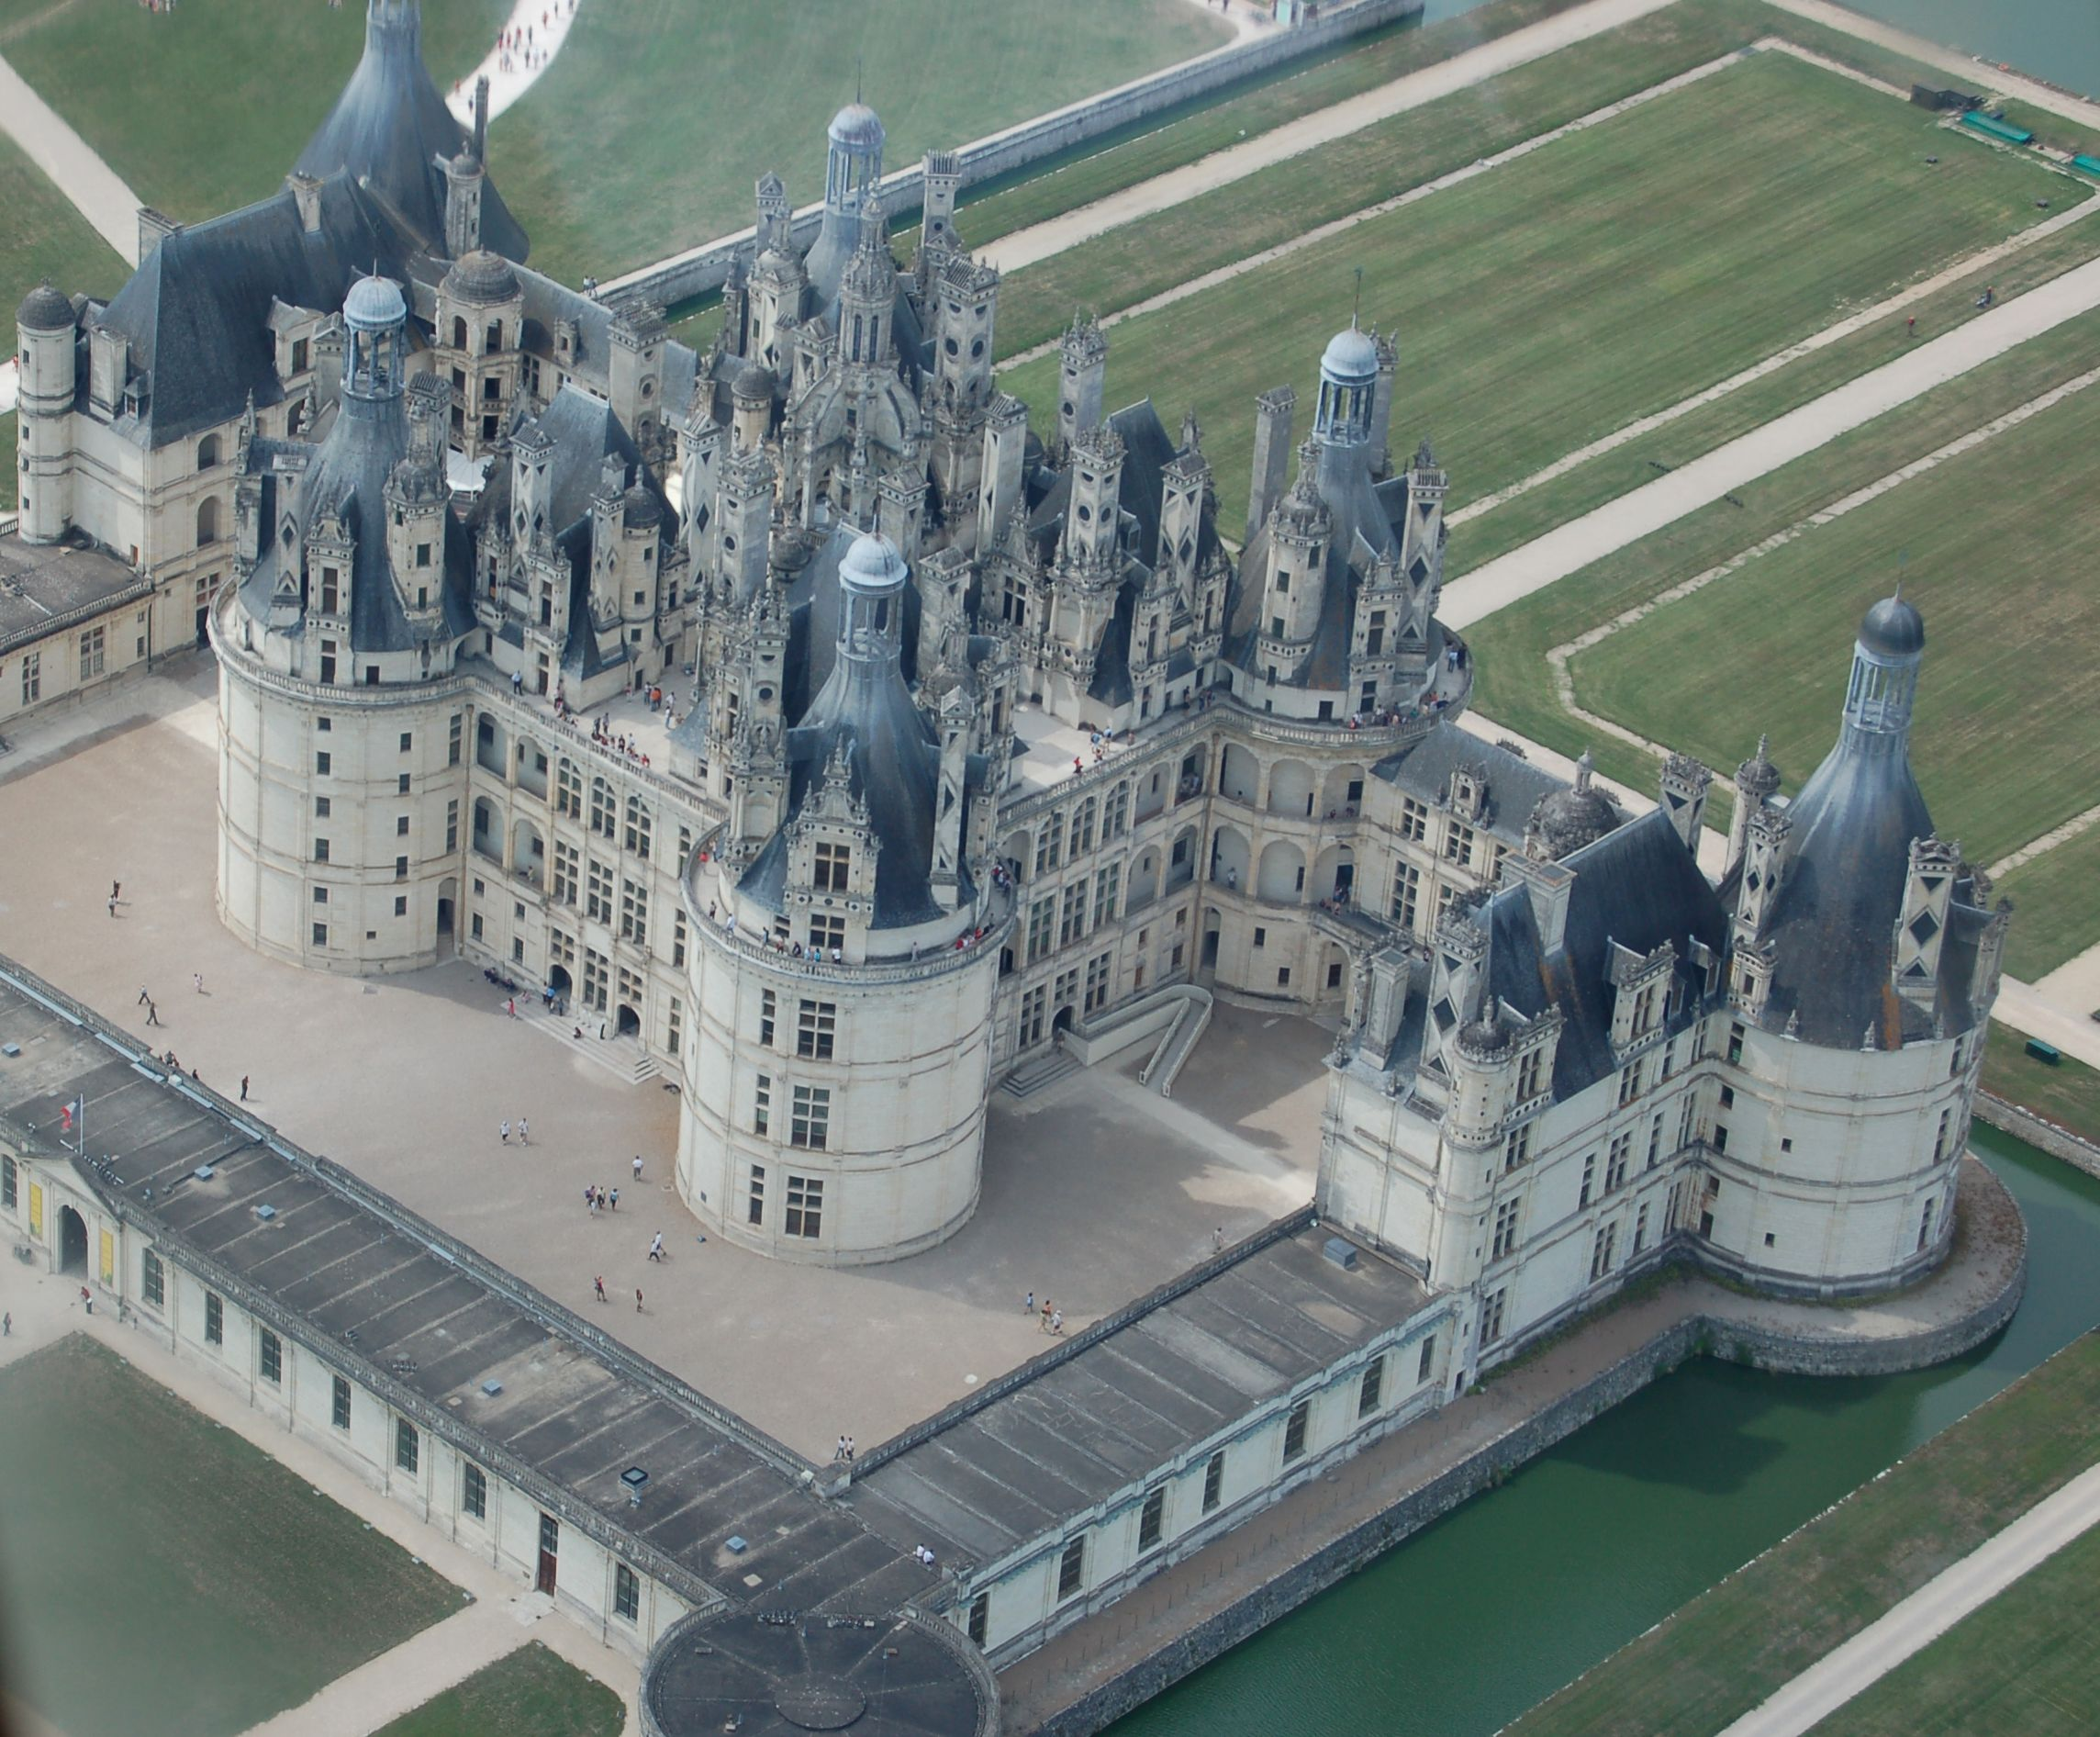 The Royal Chateau De Chambord At Chambord Loir Et Cher France Is One Of The Most Recognizable Chateaux In The World Bec Chateau De Chambord Chambord Chateau